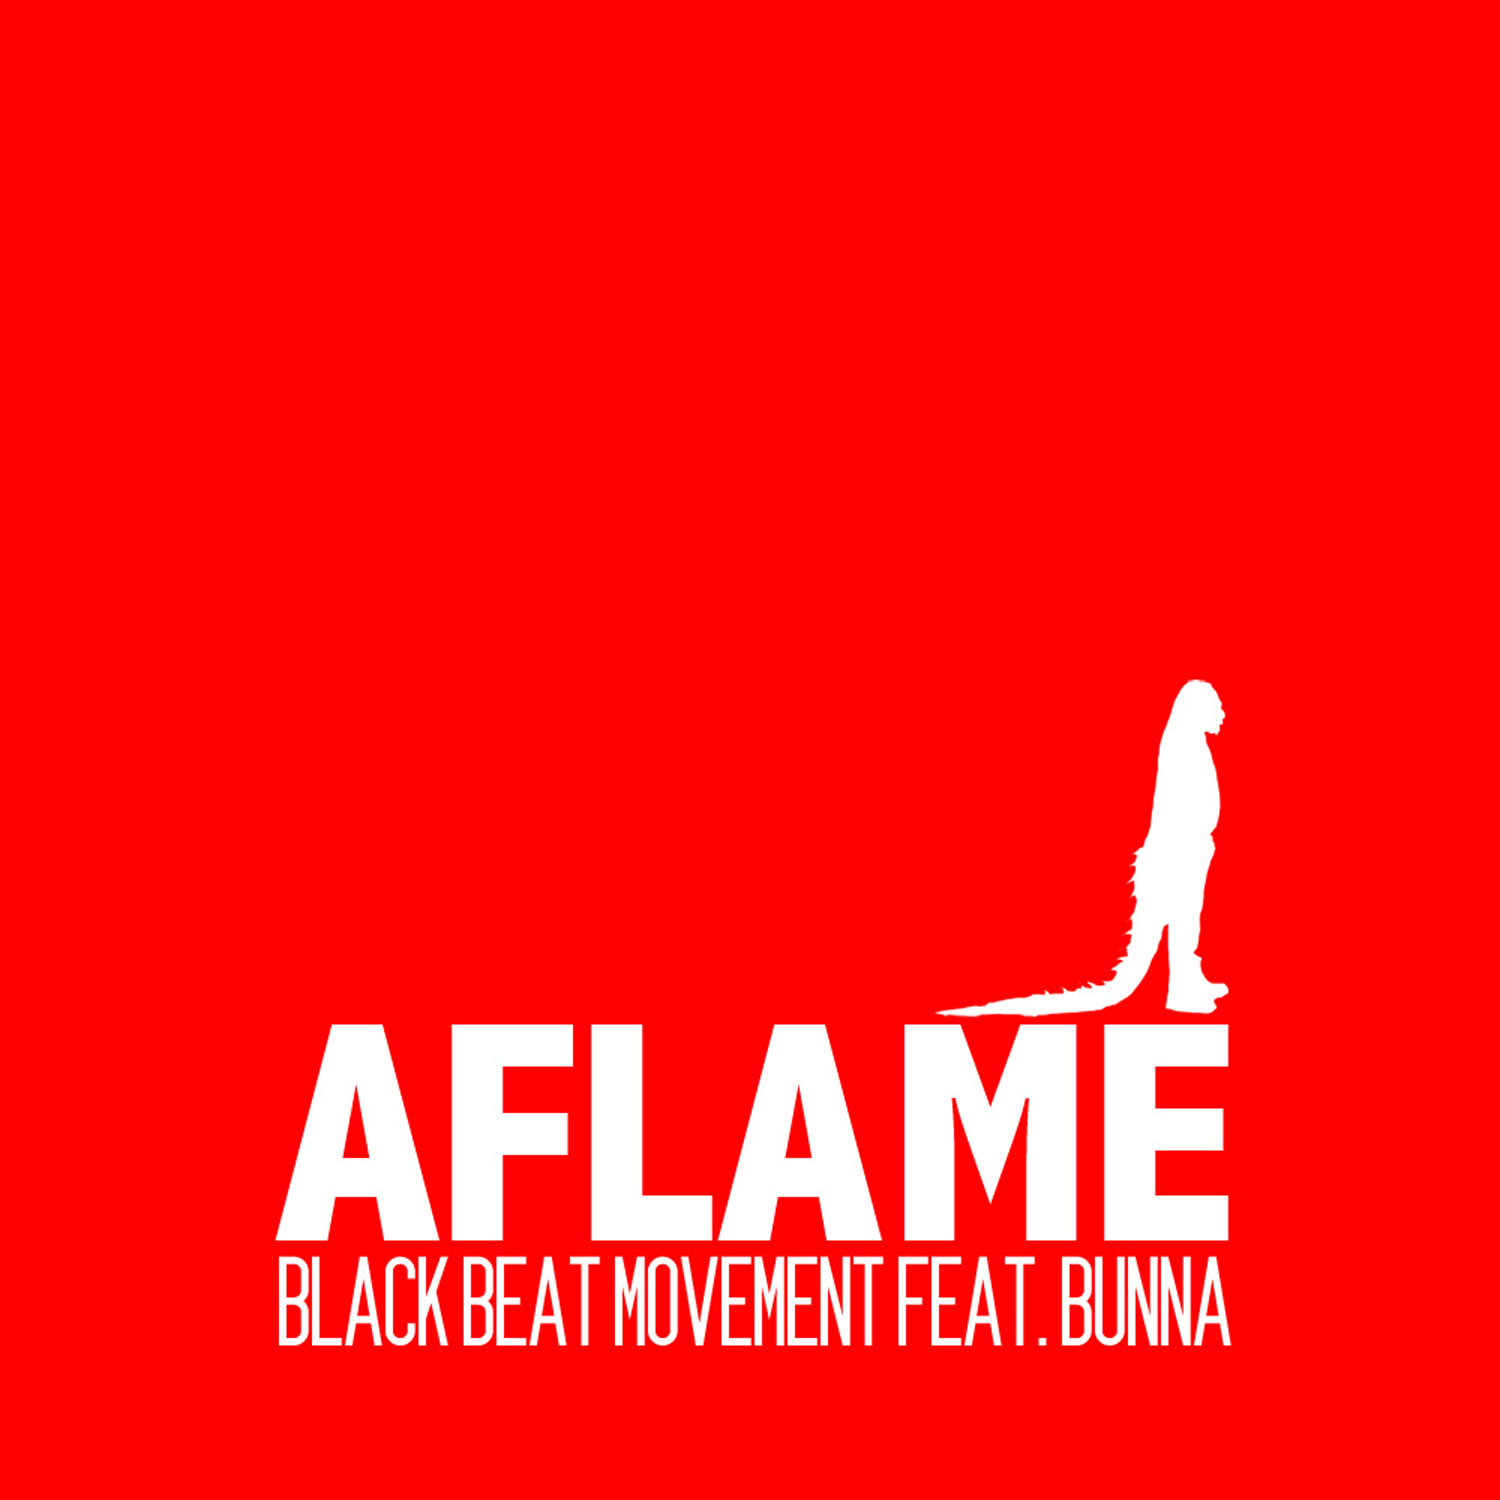 AFLAME (FEAT. BUNNA)